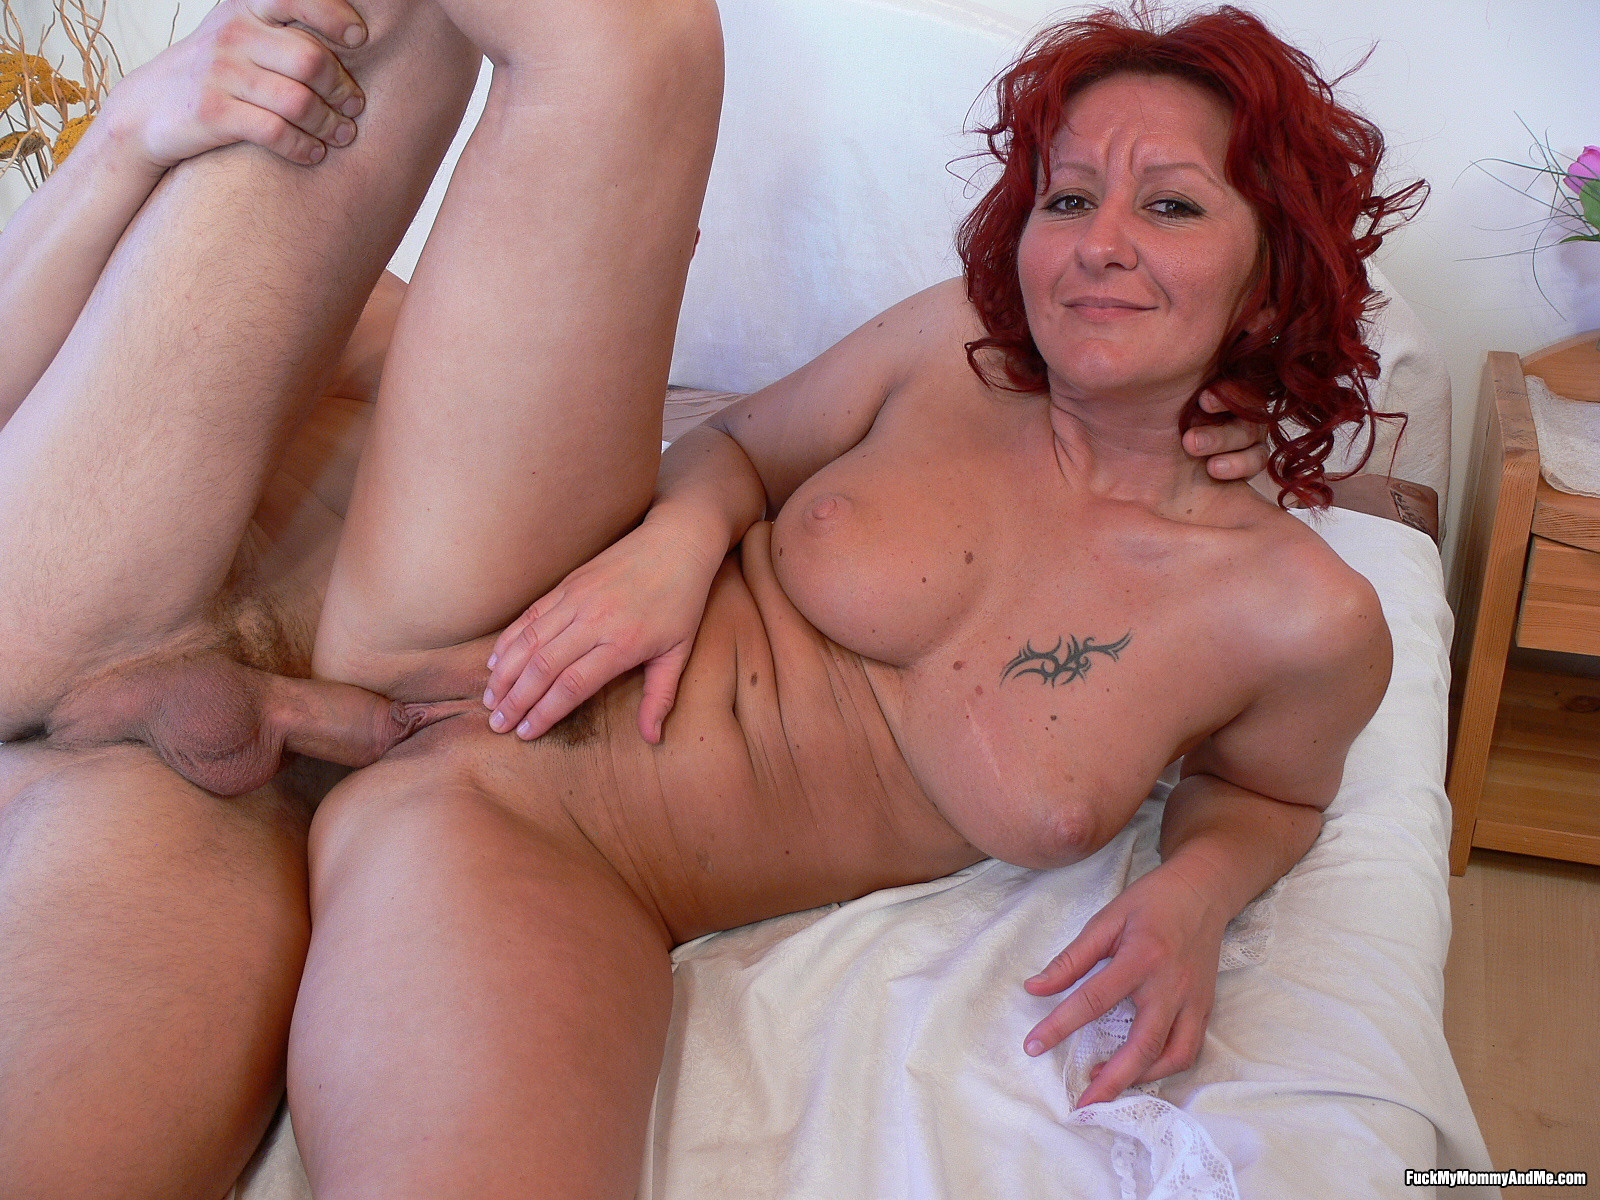 Gorgeous mature red head in stockings